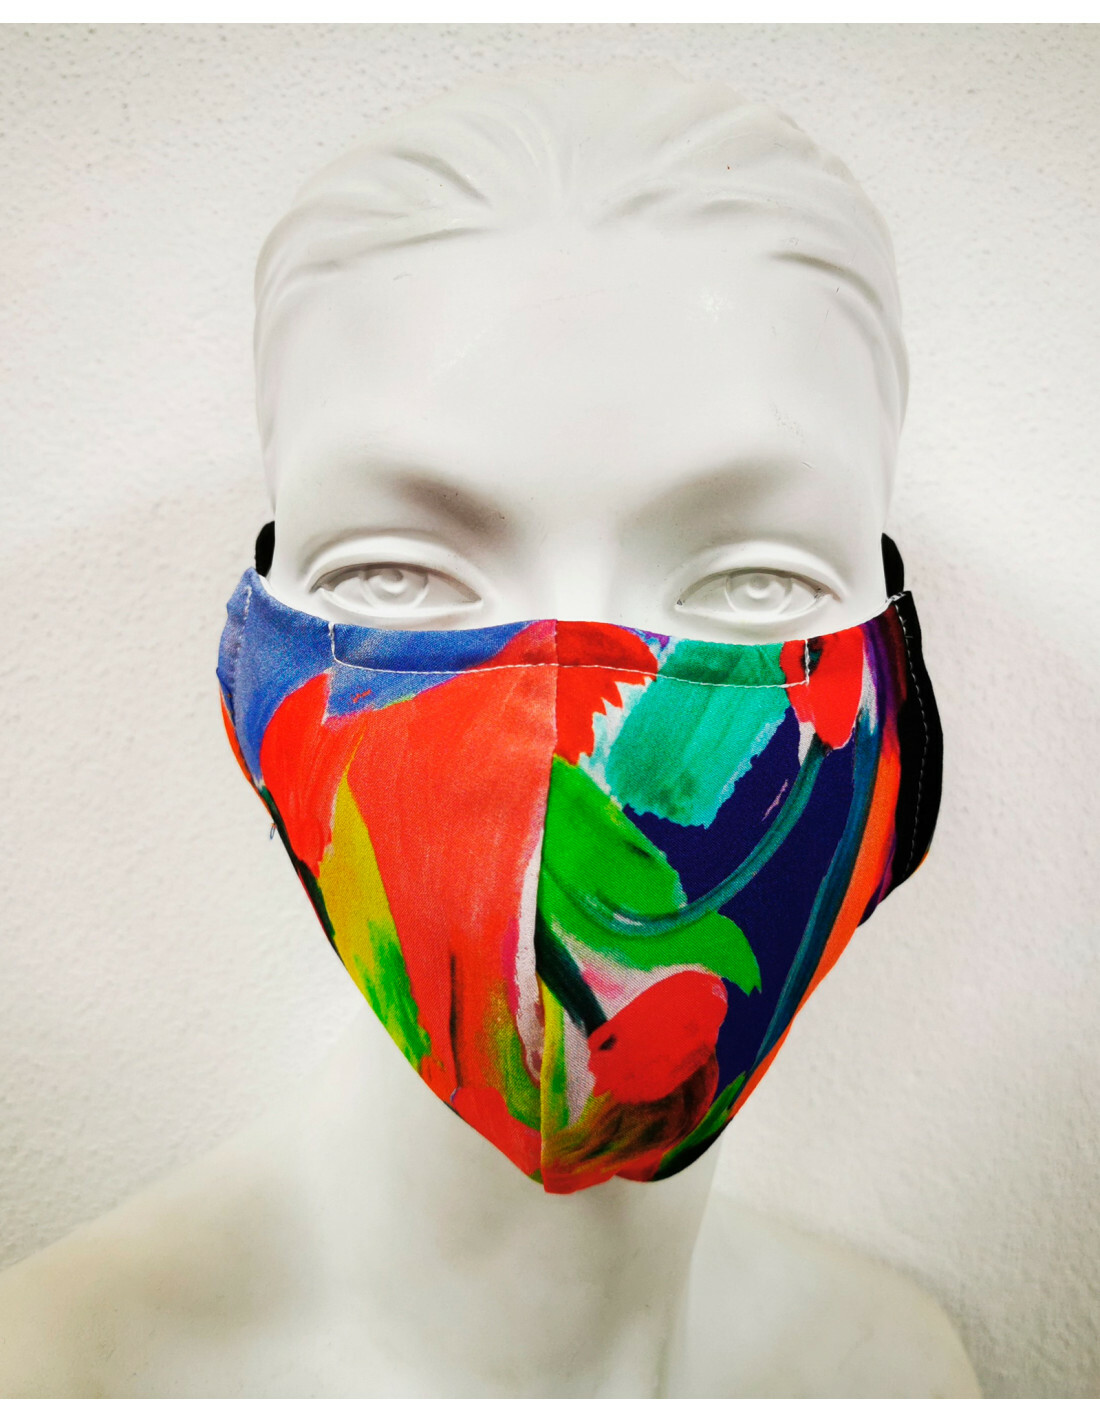 Maloka Art Mask (With Filter): Free Gift (Art Varies, as per pictures)